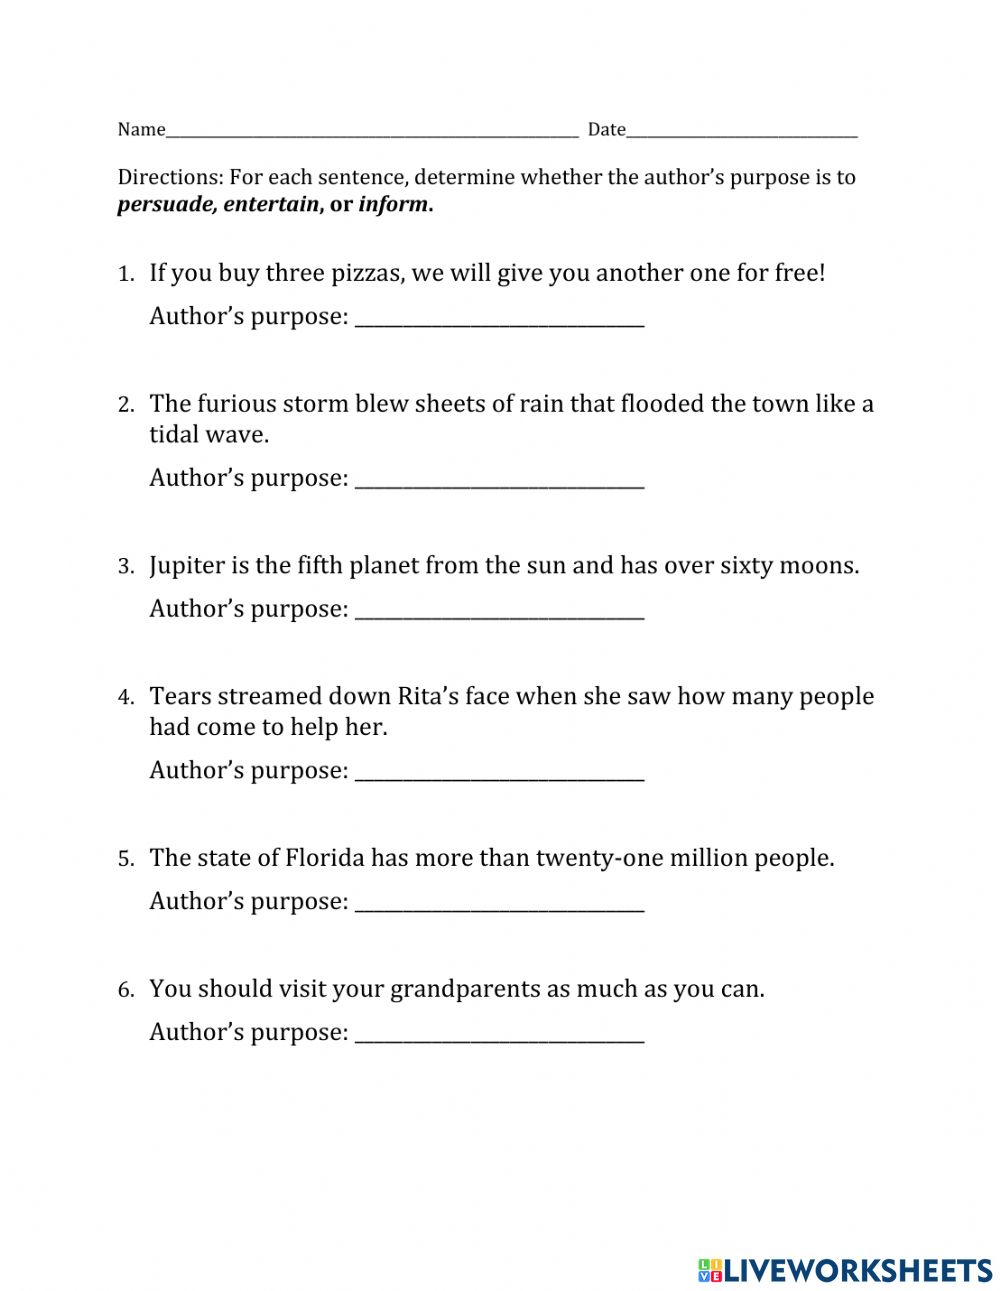 medium resolution of Author's Purpose 1 worksheet